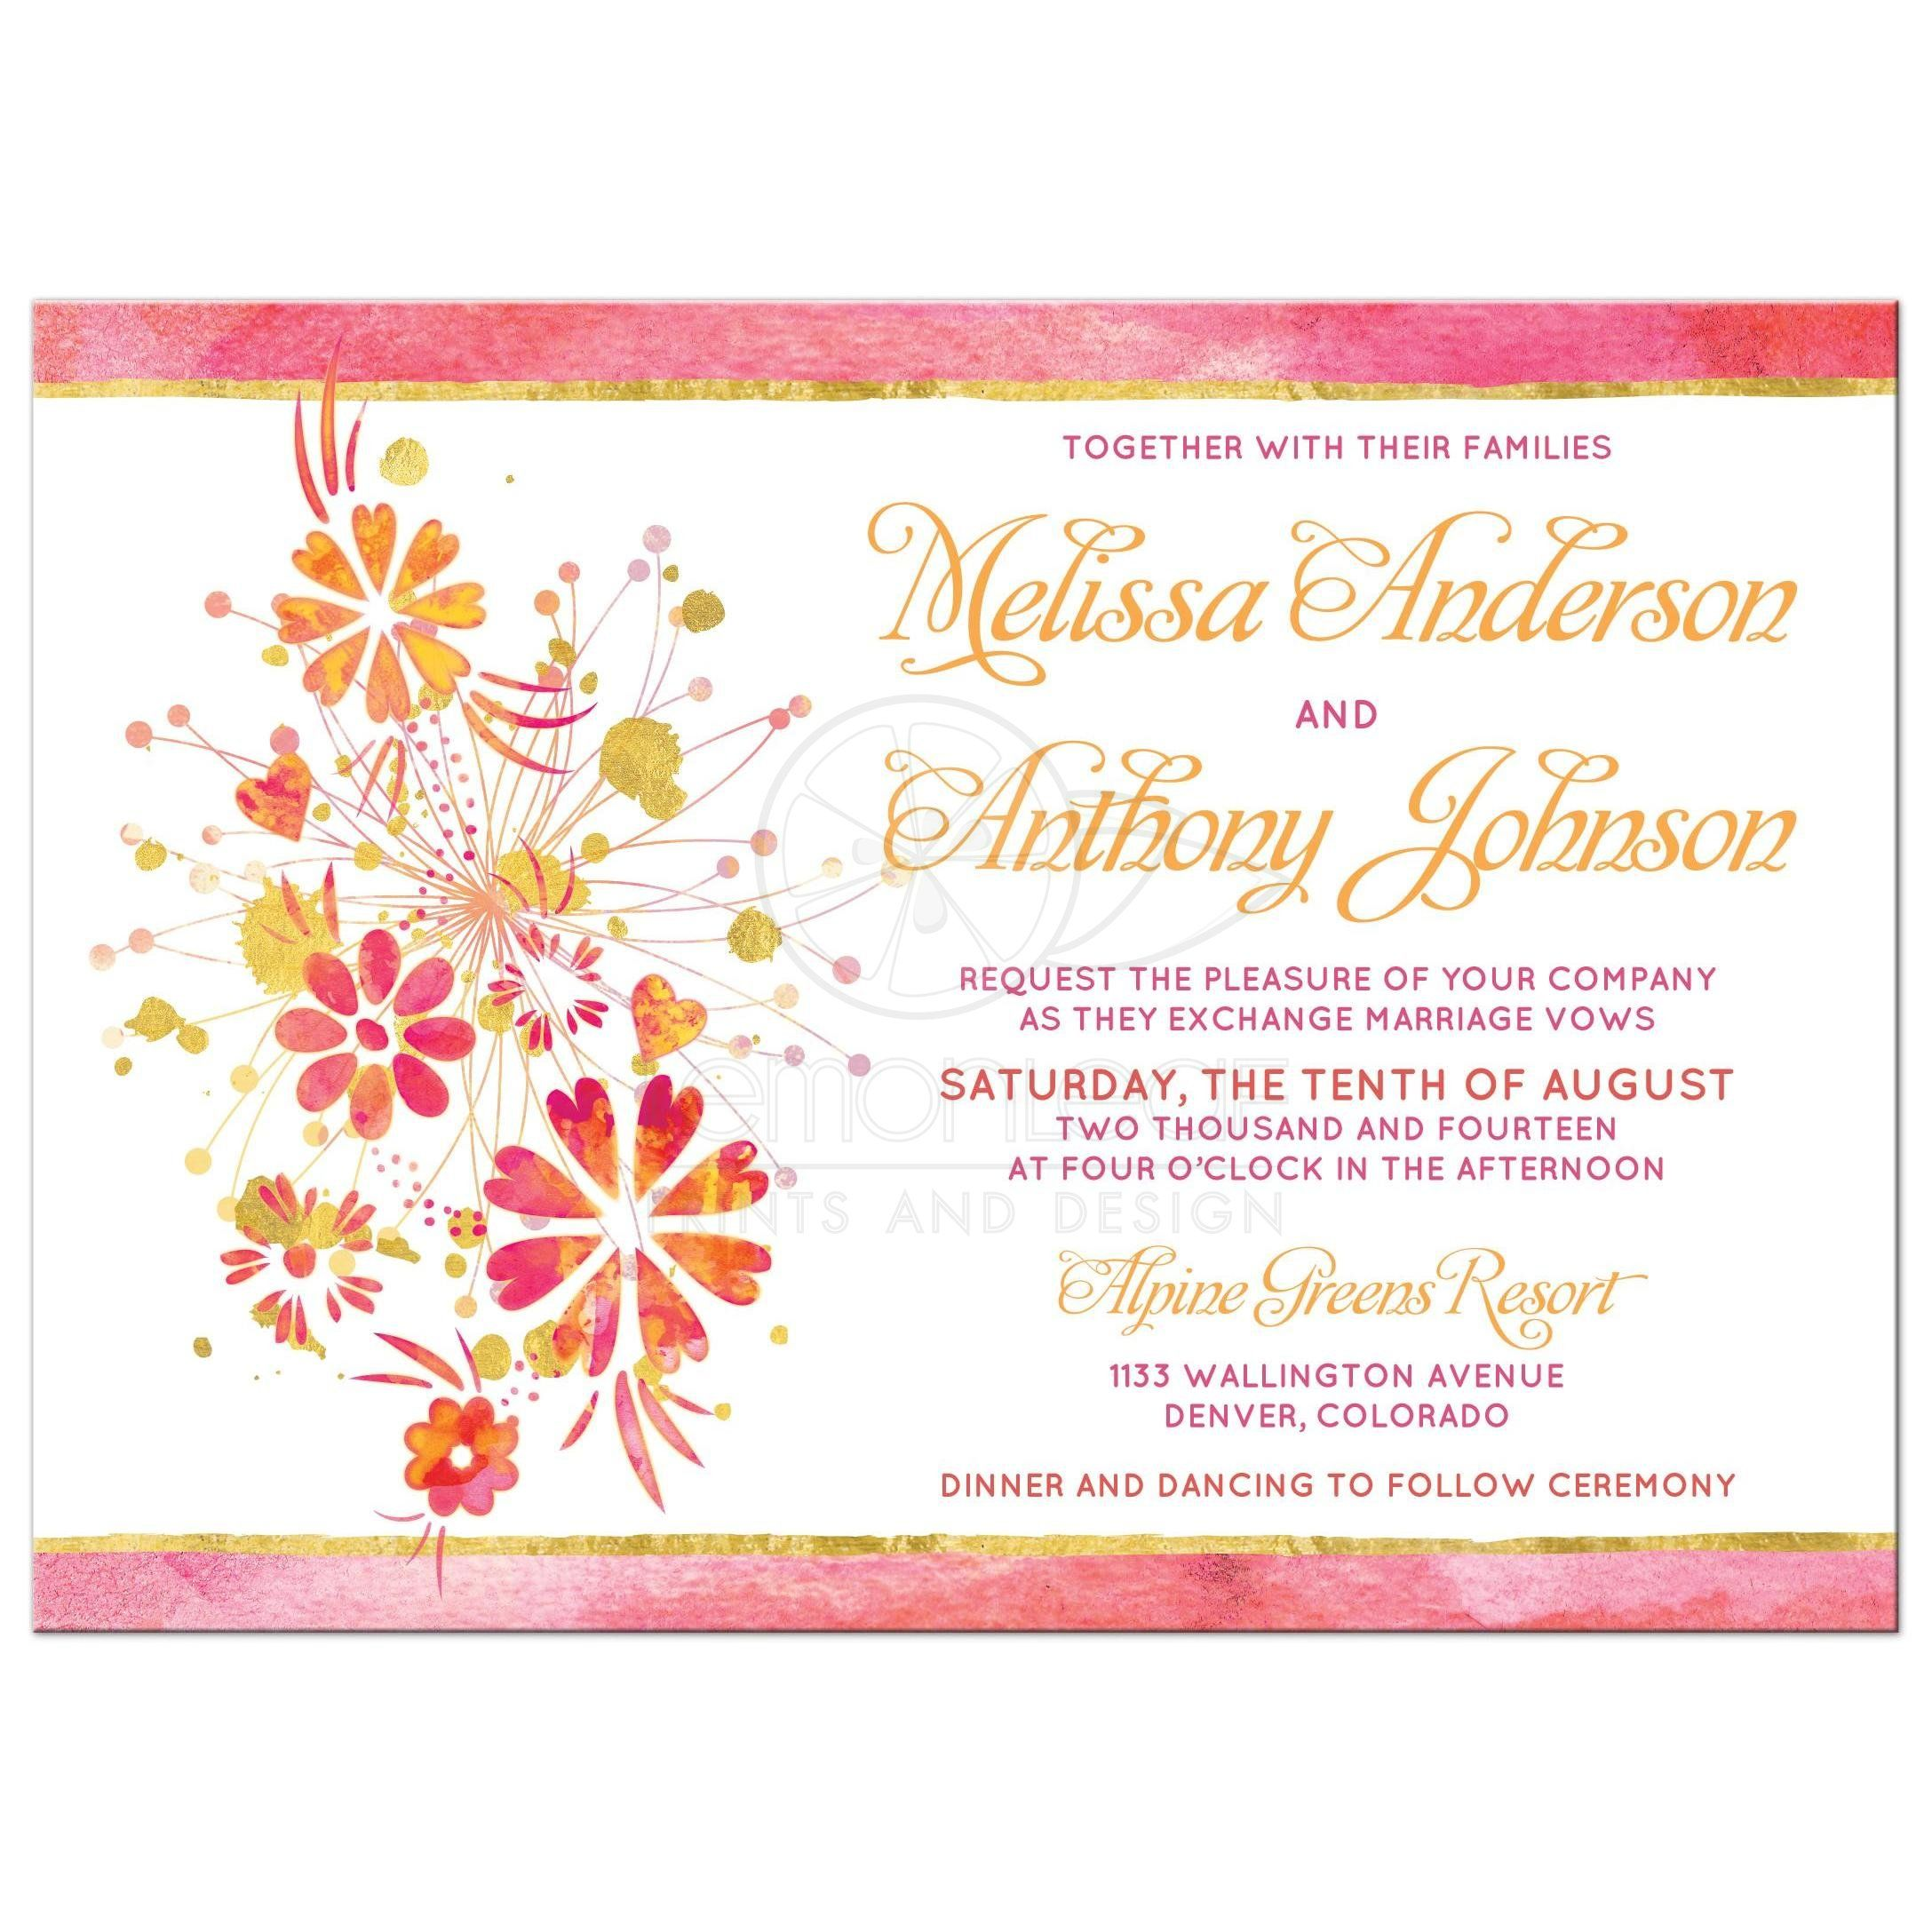 Wedding Invitation | Watercolor Floral Pink Orange Gold | Products